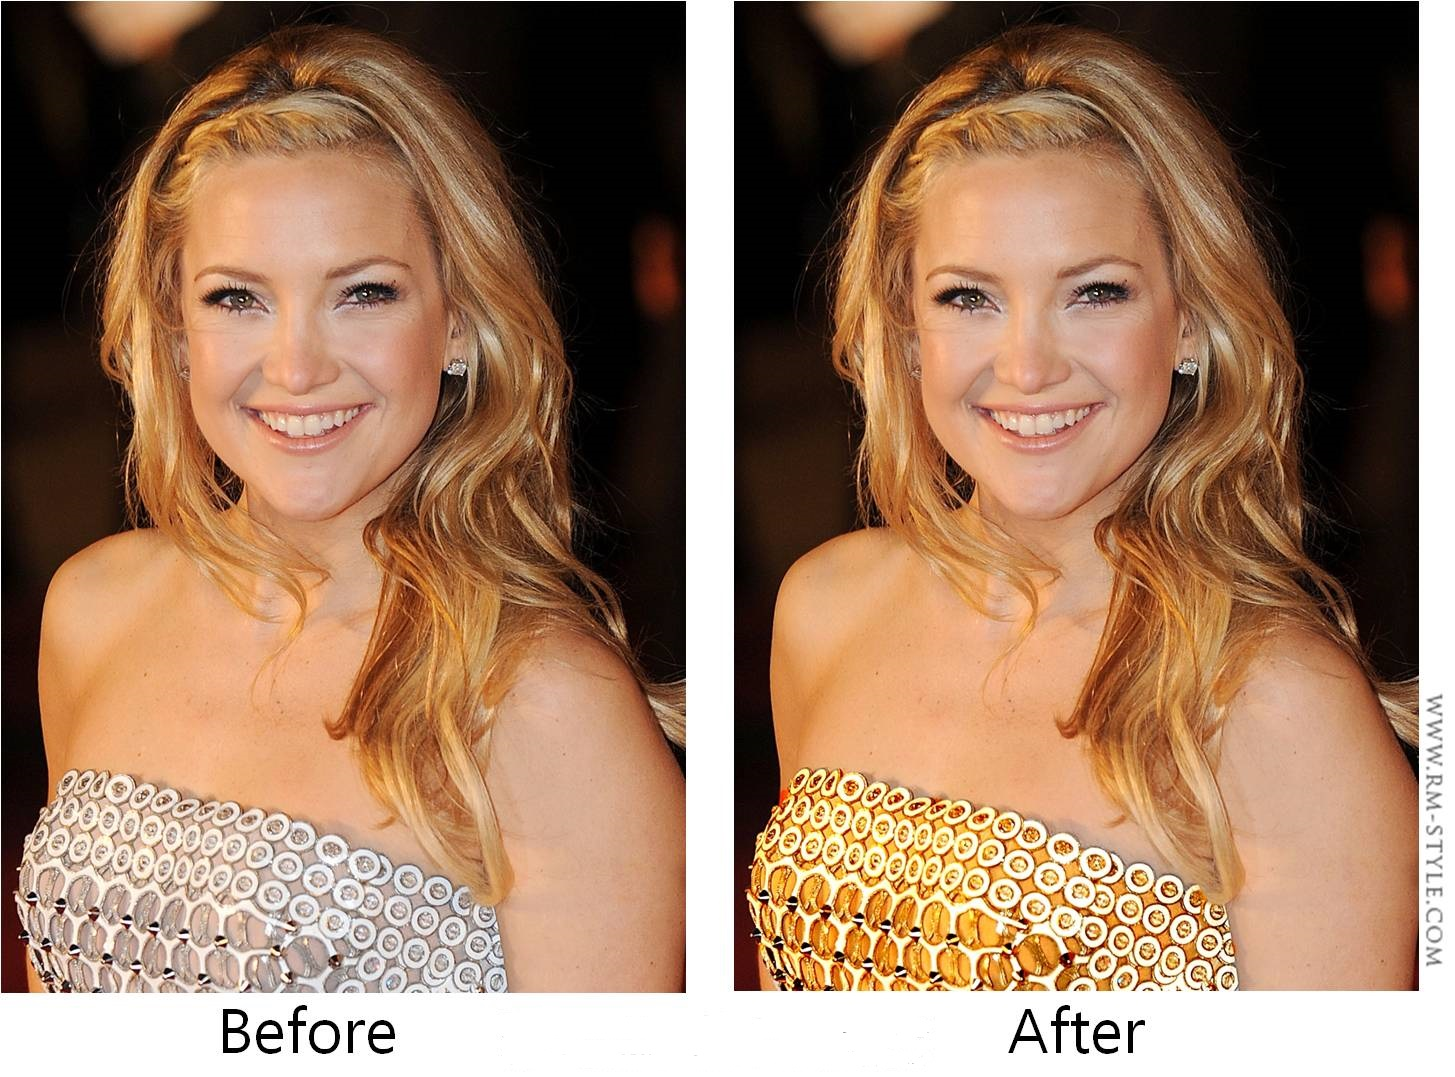 You just need to change the color of the metal to enlighten hair and complexion. In this photo Kate Hudson